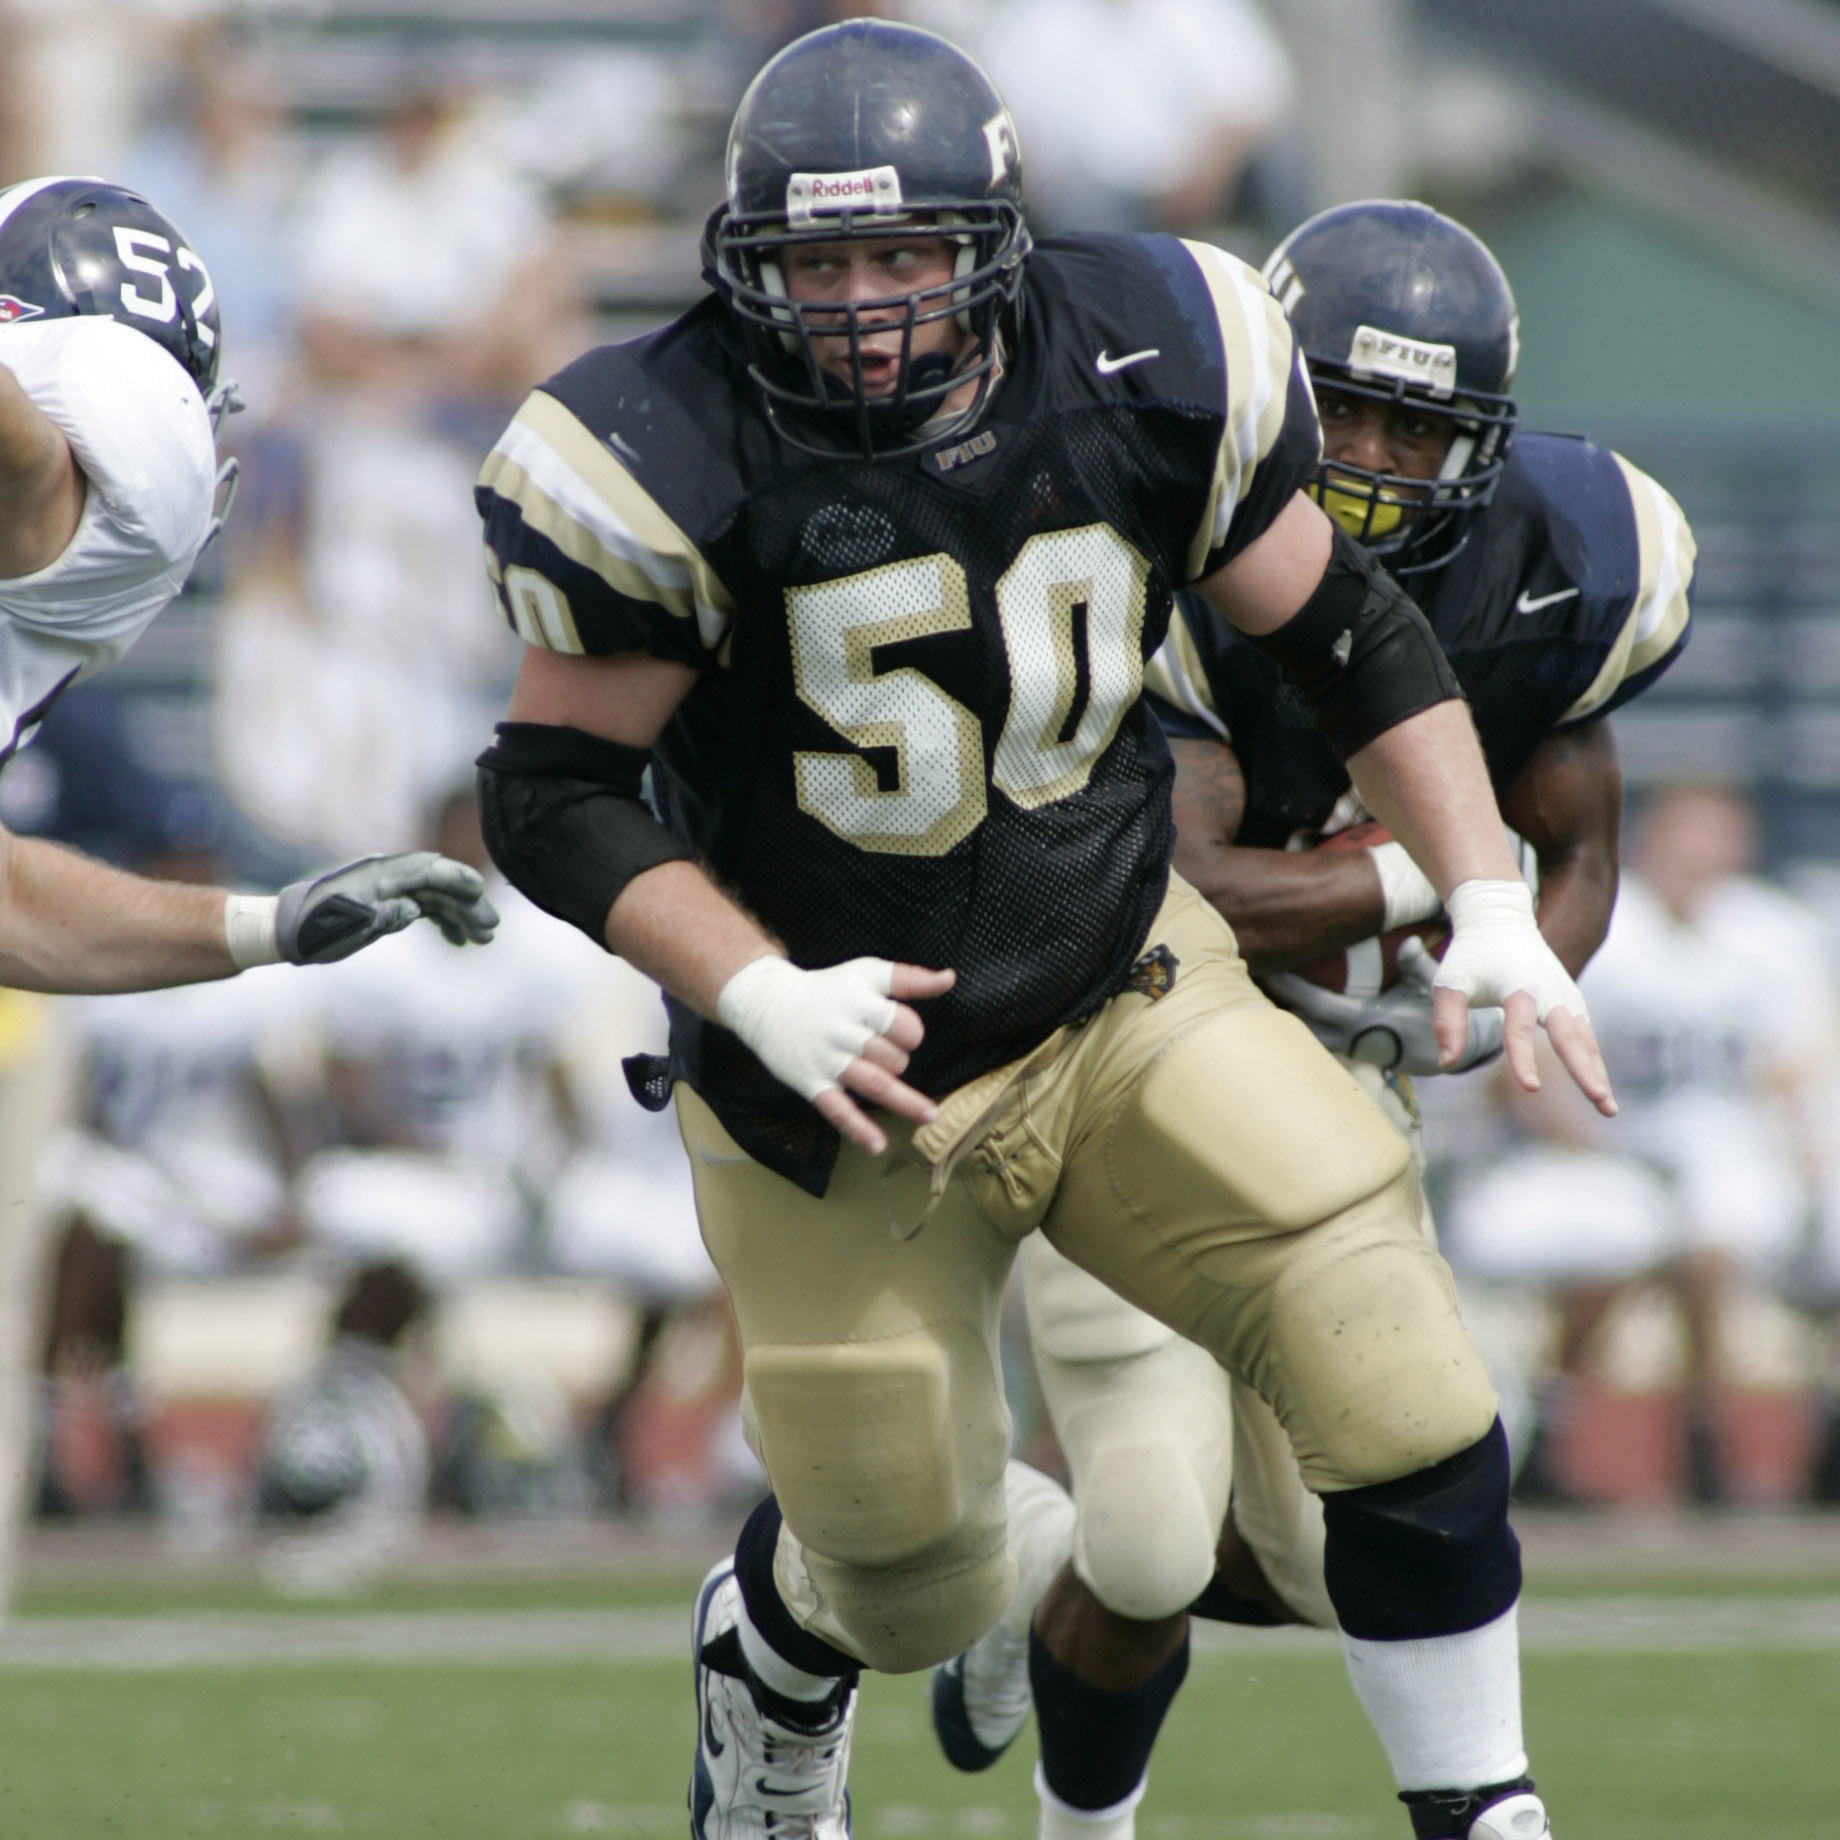 Inaugural 2002 Fiu Football Team Where Are They Now No 50 Ed